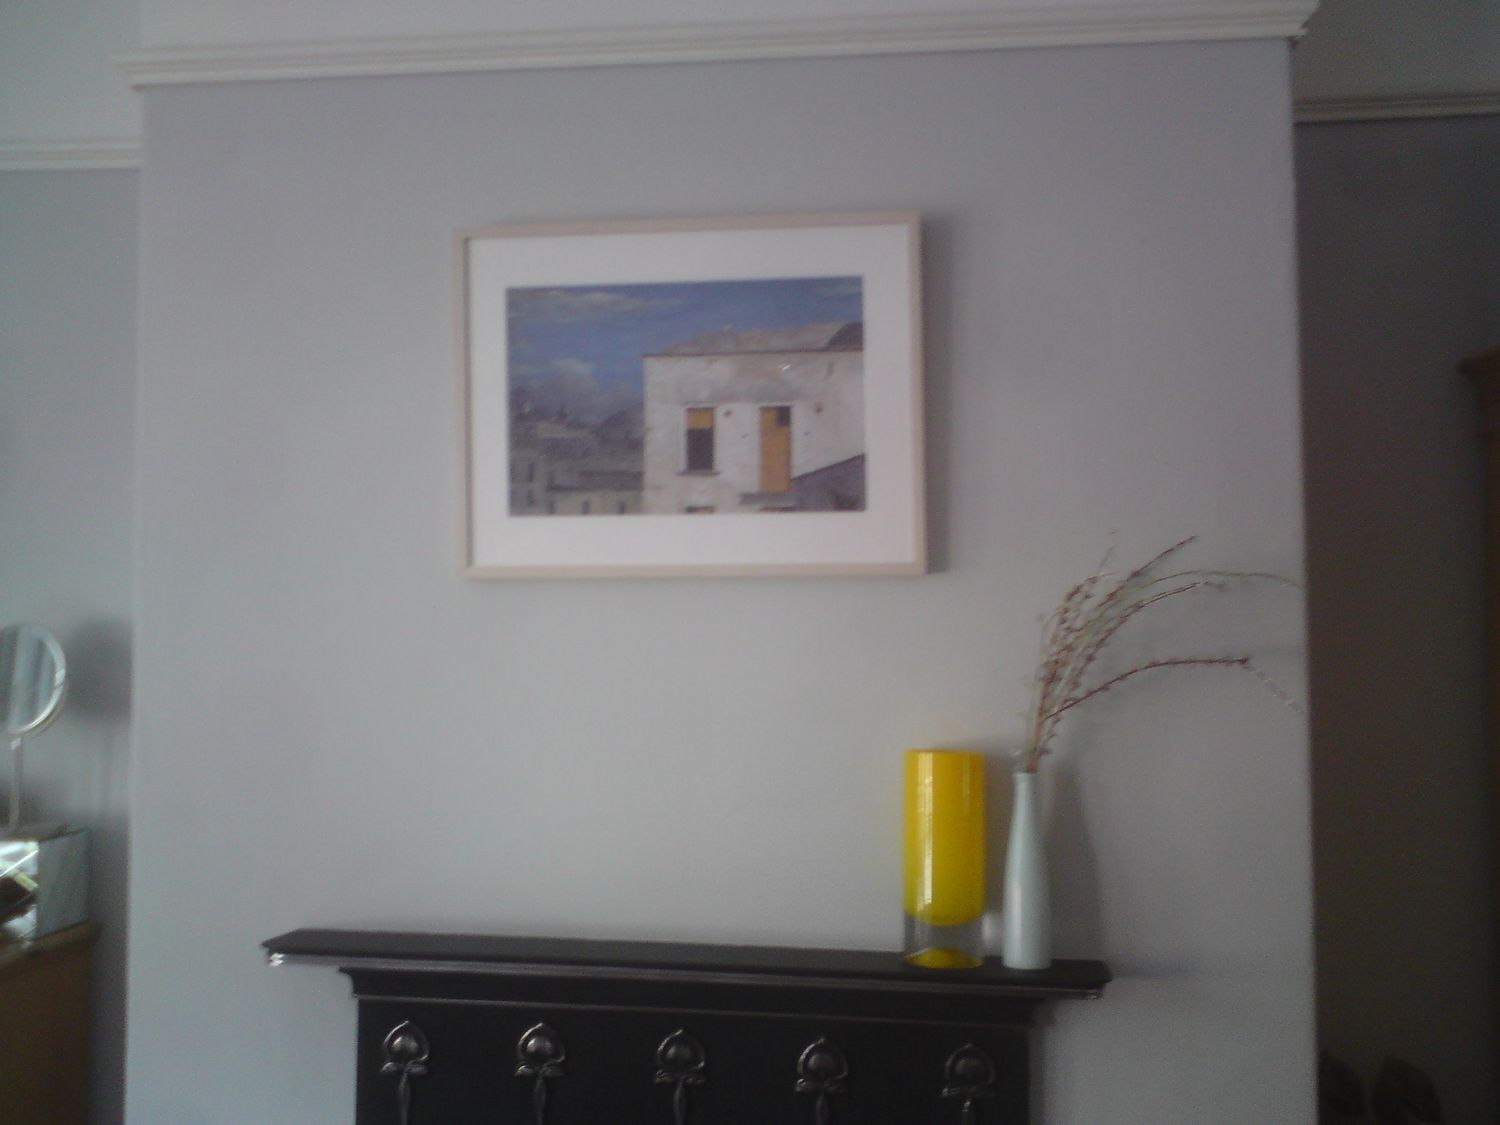 Before, the walls were grey and there were blue and yellow vases on the mantle piece.